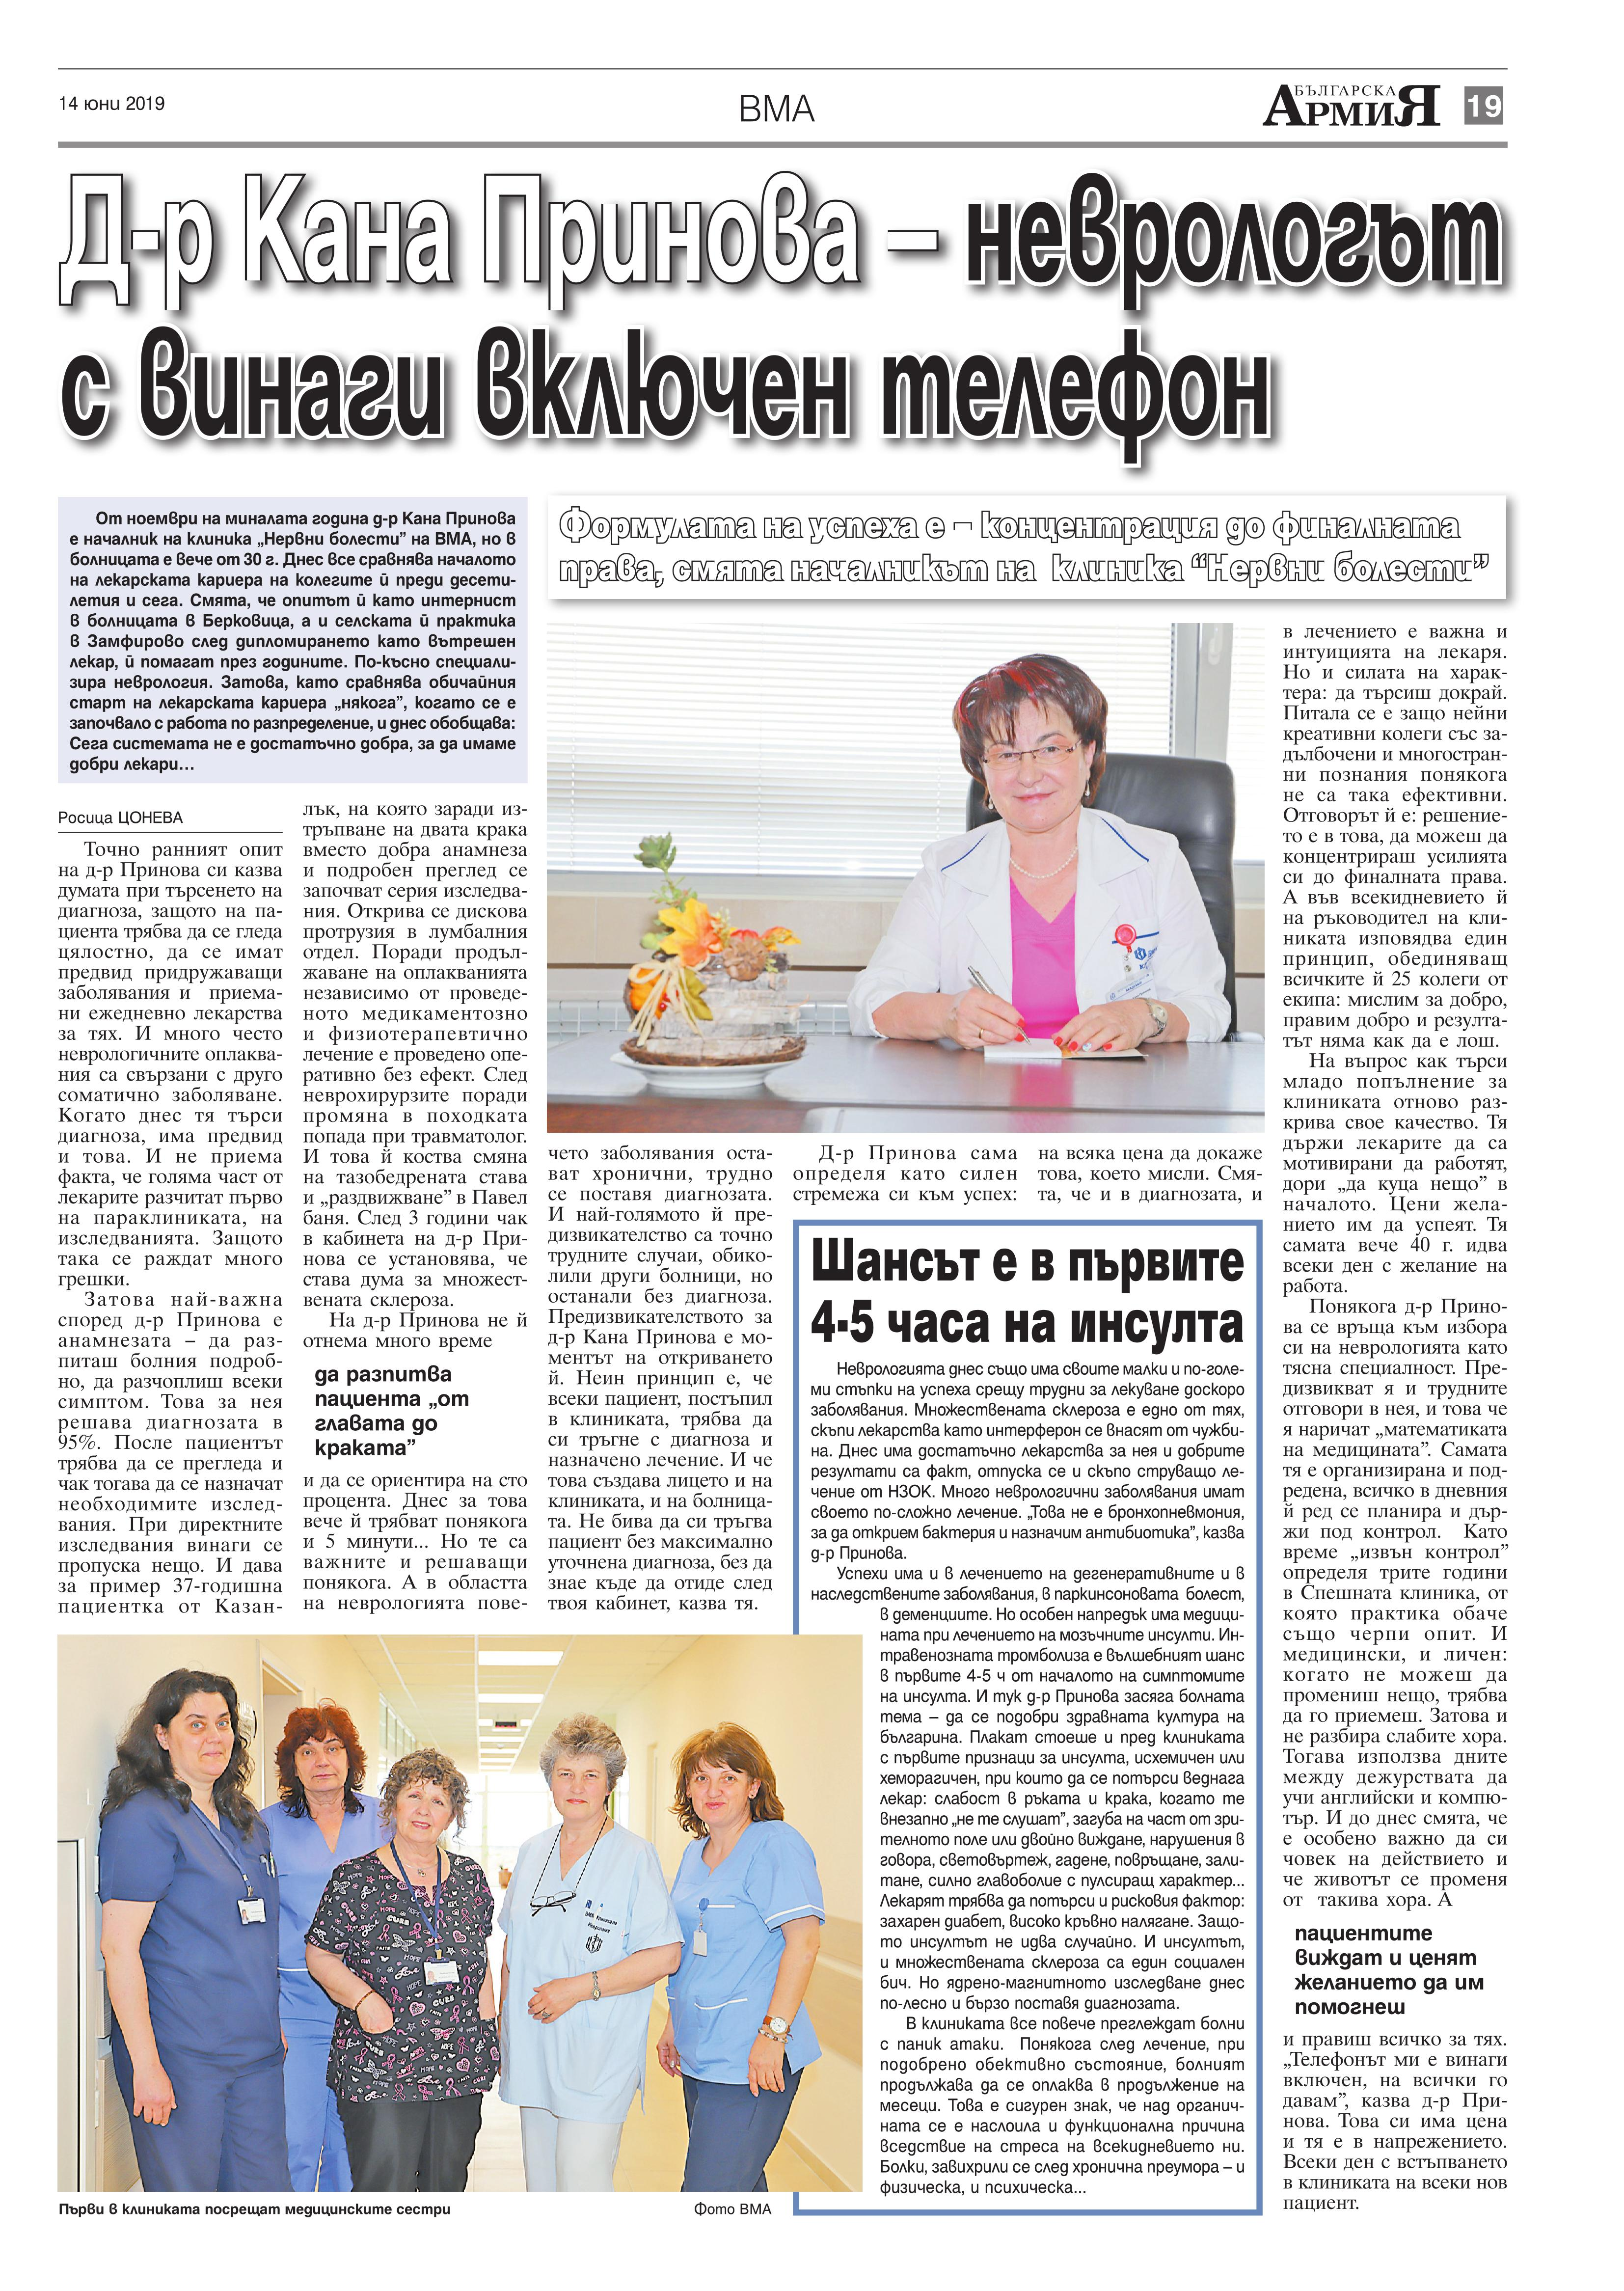 https://armymedia.bg/wp-content/uploads/2015/06/19.page1_-100.jpg